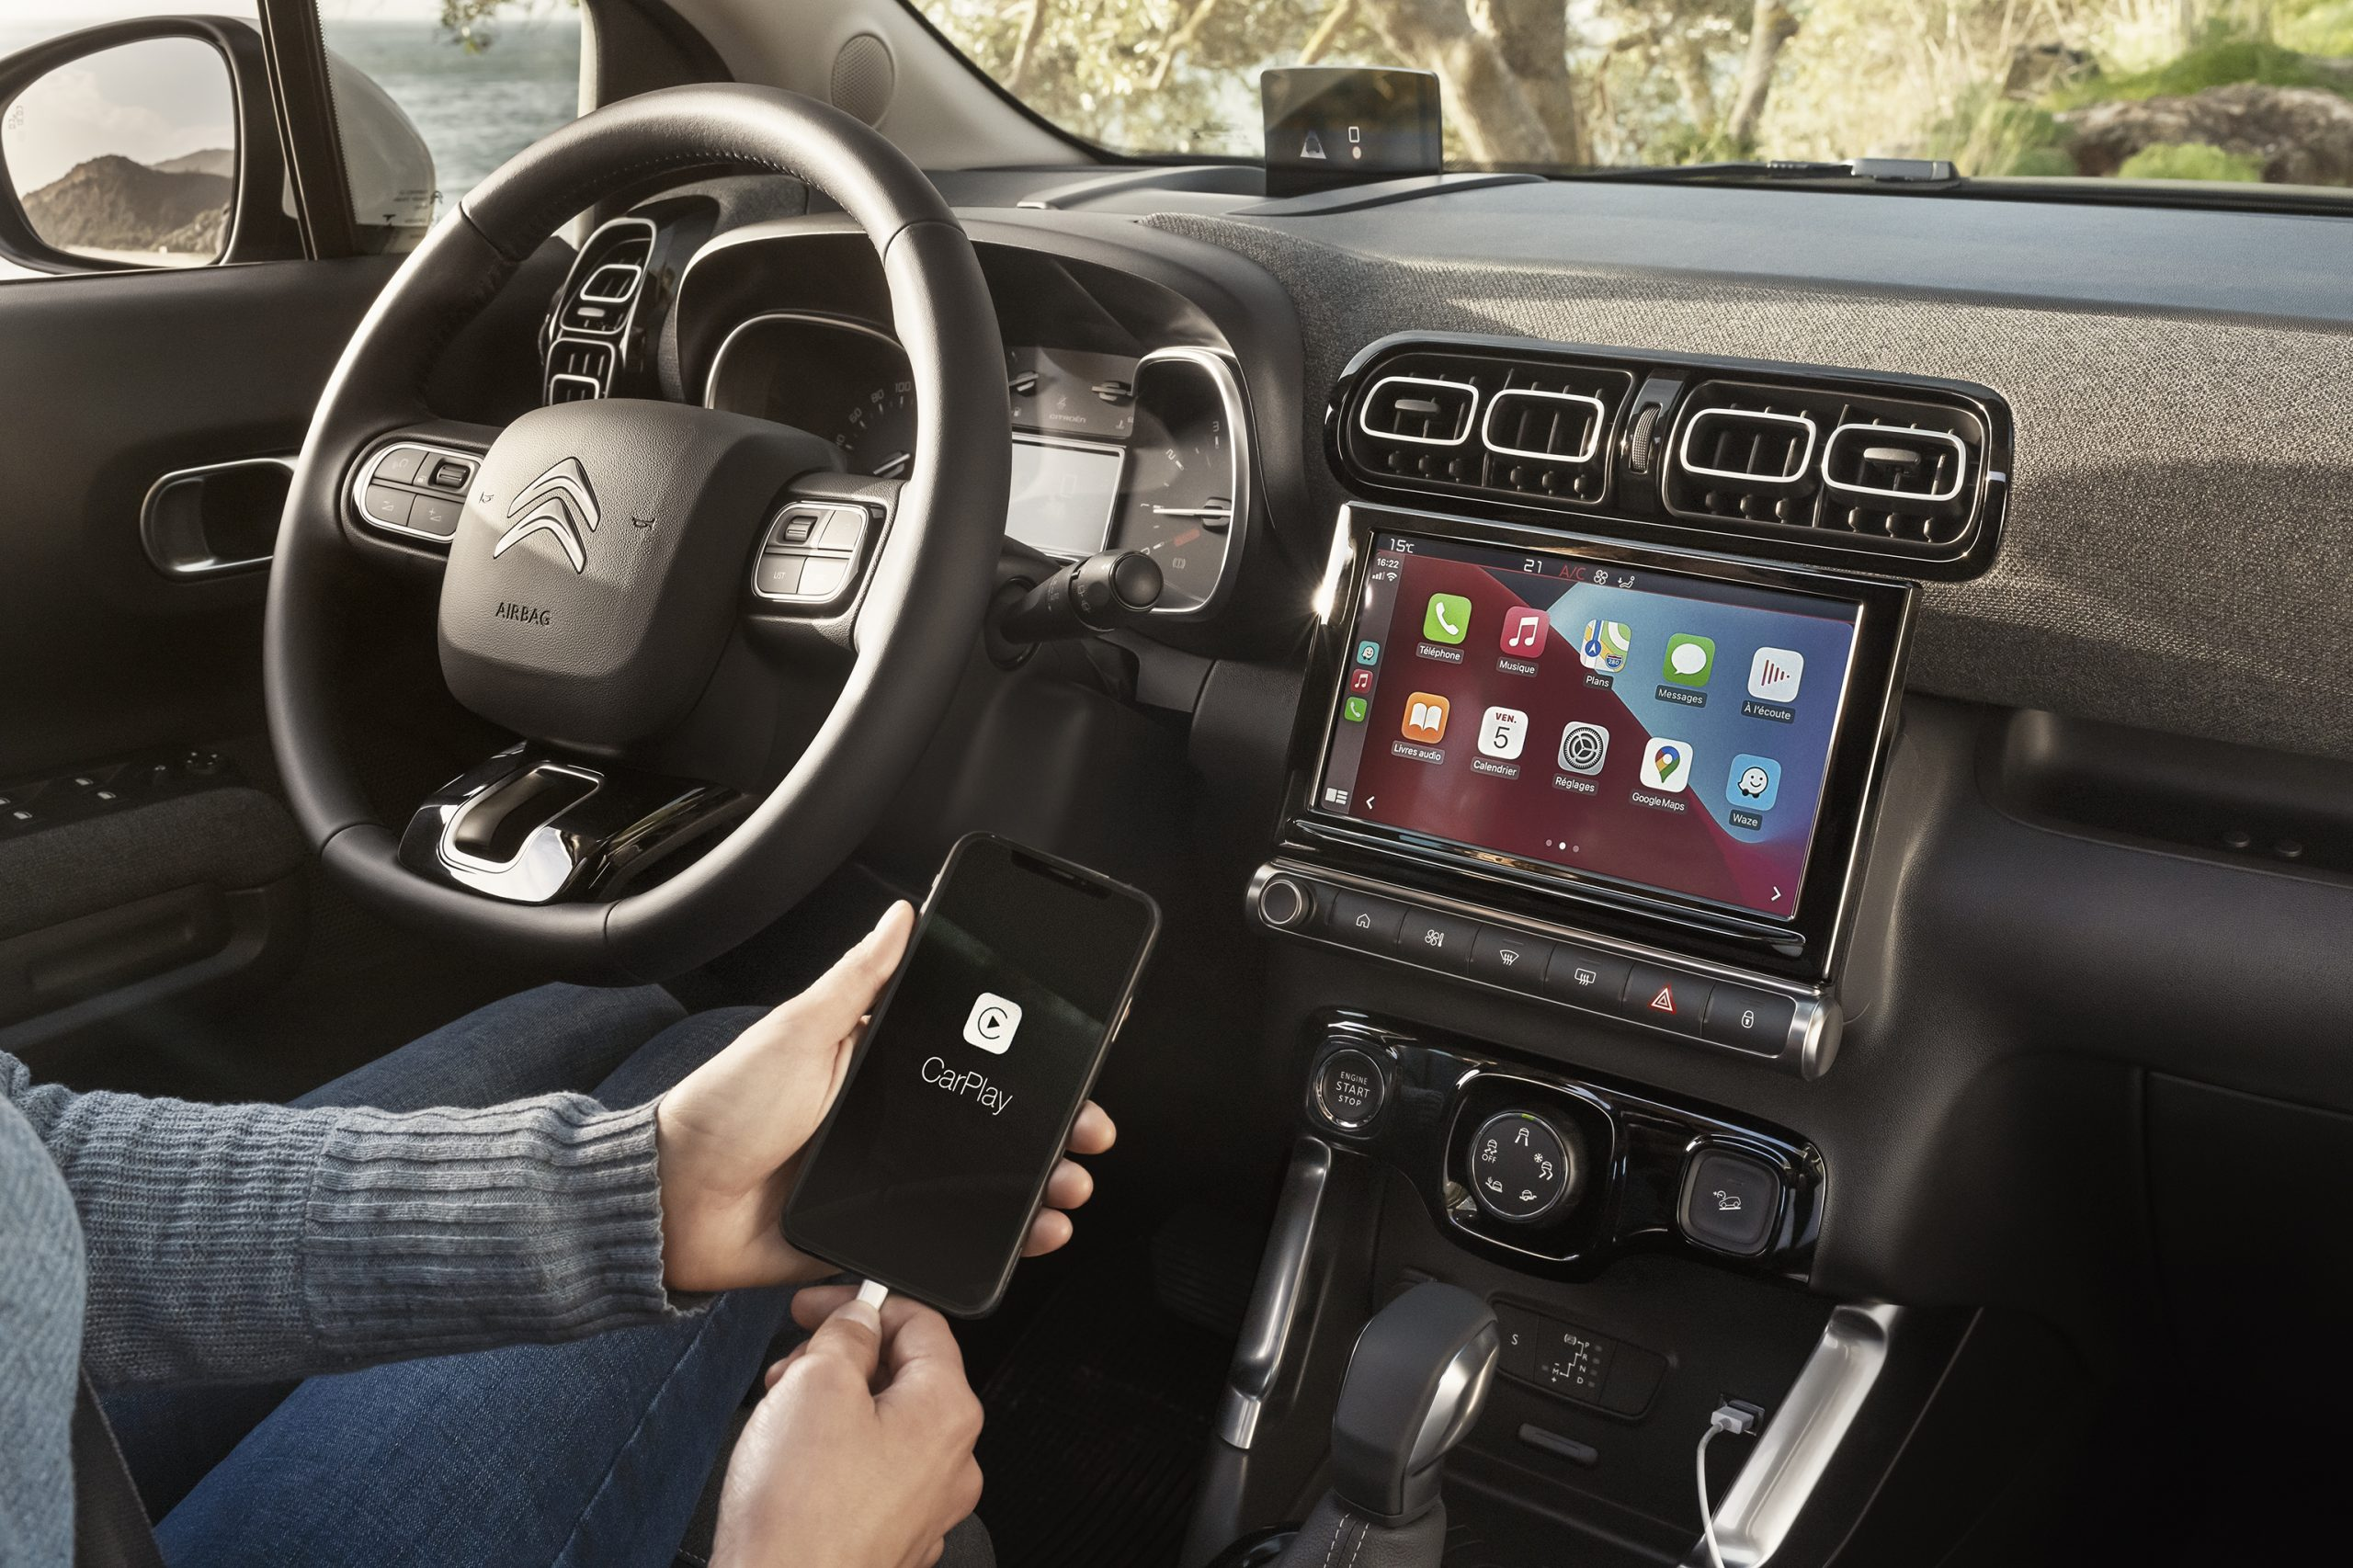 c3 aircross interior and touchscreen features